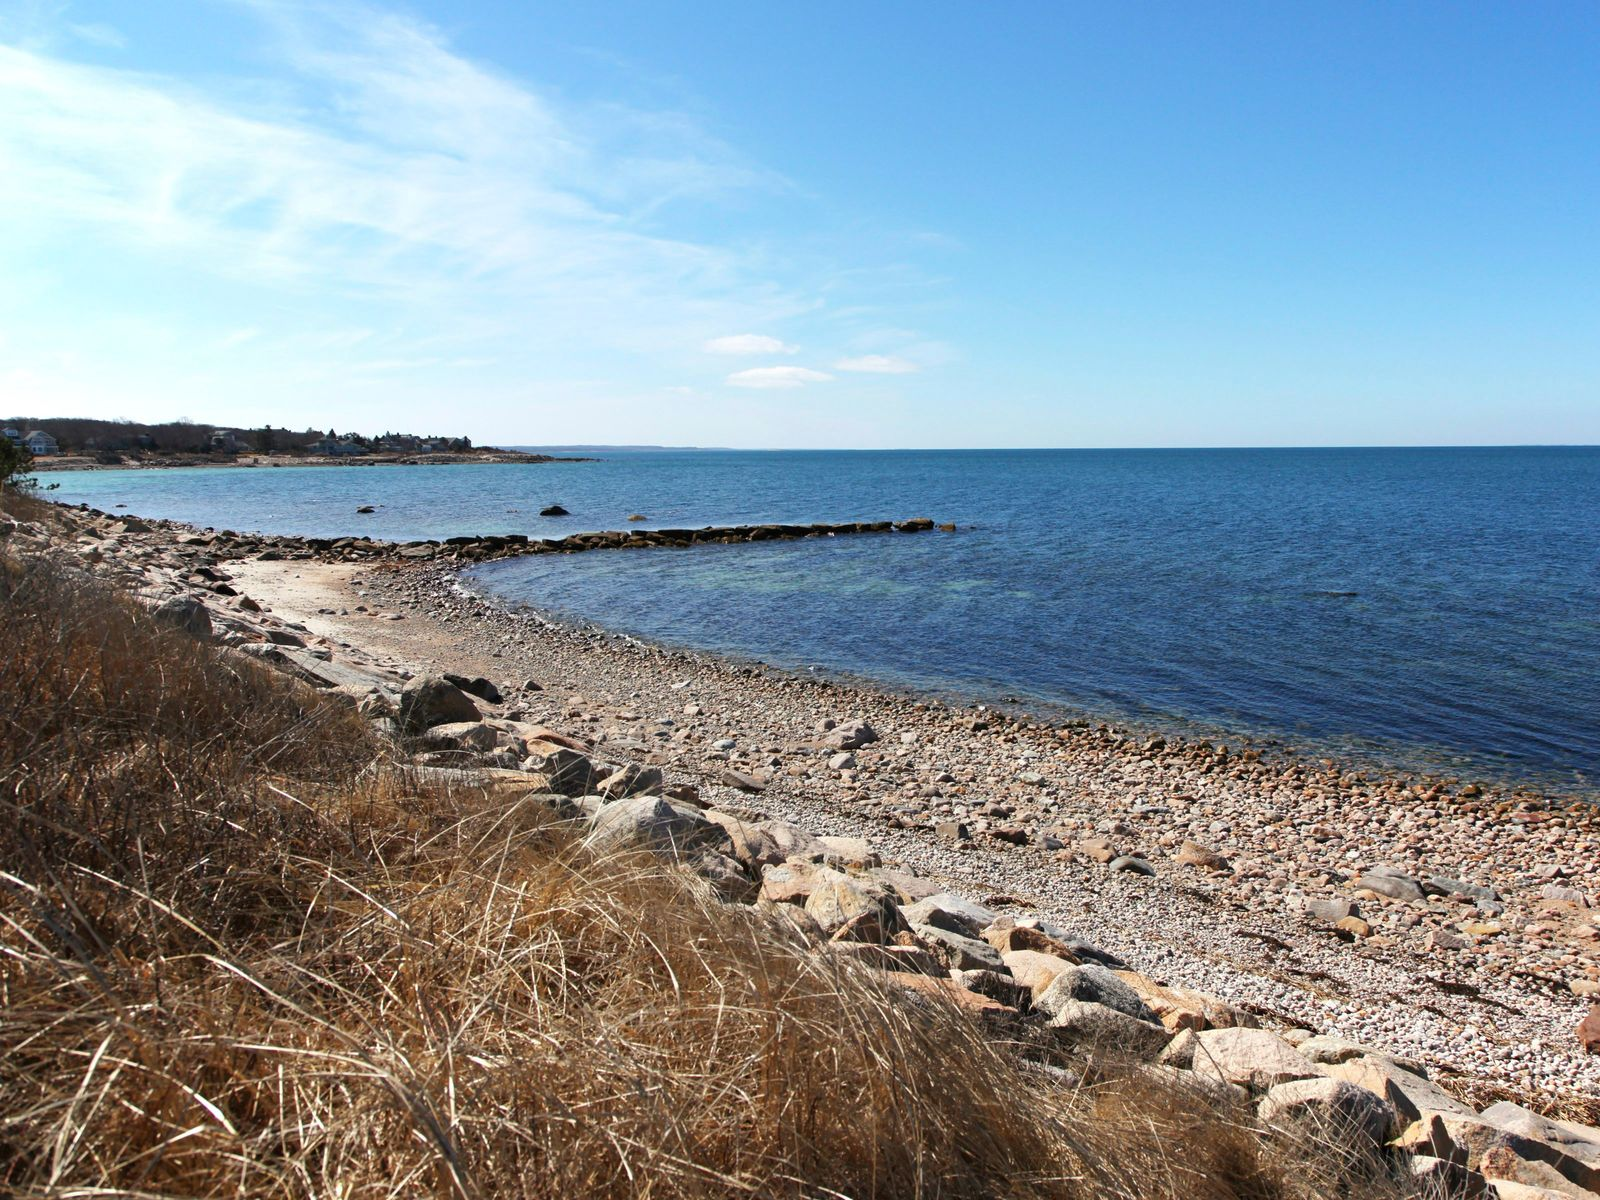 Water View Land in Sippewissett, Falmouth MA Acreage / Lots - Cape Cod Real Estate